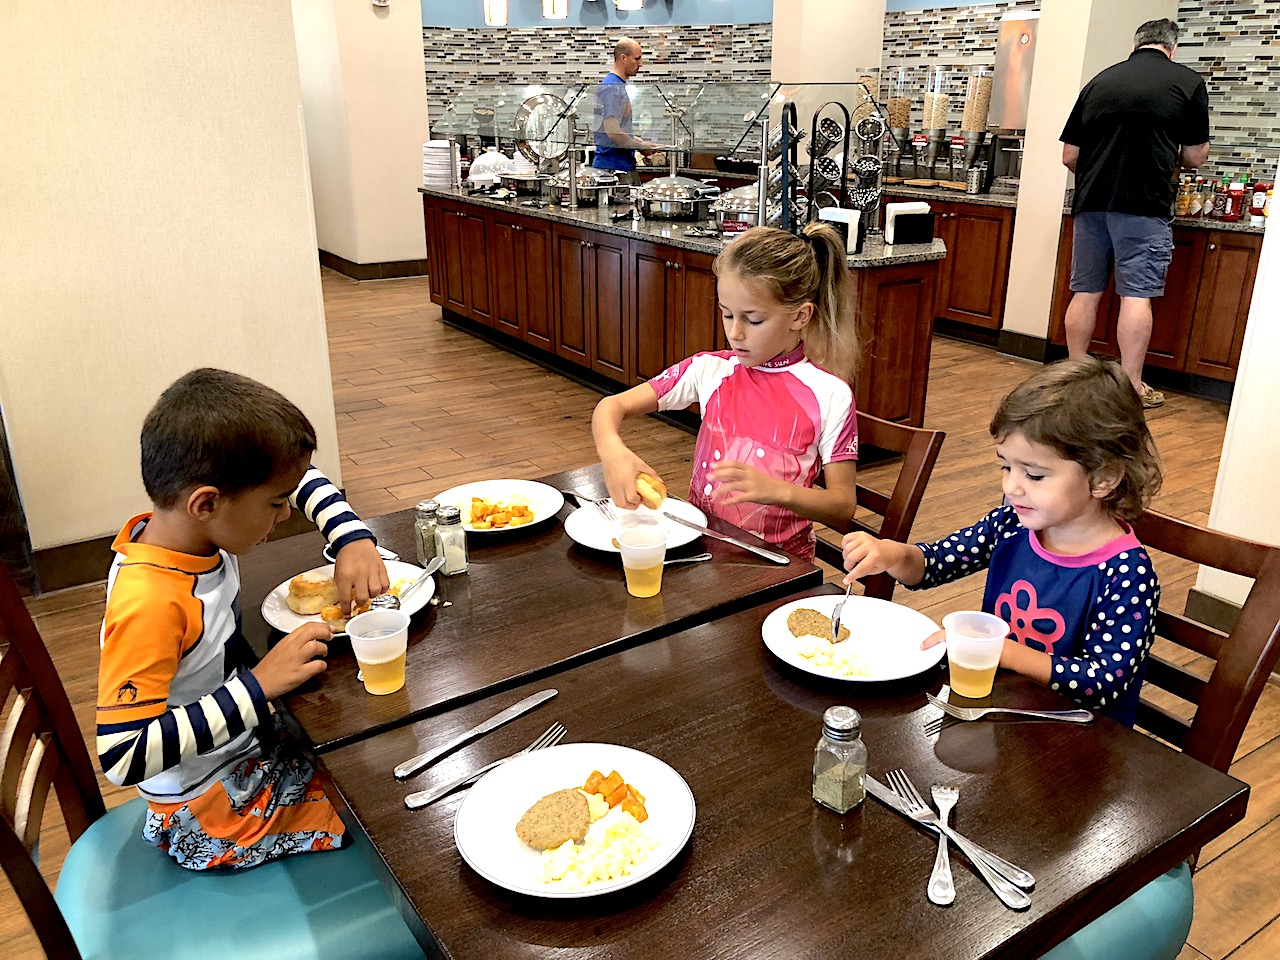 Drury Inn and Suites Gainesville Breakfast - 2-day itinerary for families in Gainesville, FL #gainesville #florida #tourofflorida #alachuacounty #gainesvilleFL #universityofflorida #UF #gogators #Gainesvillewithkids #gainesvilleitinerary